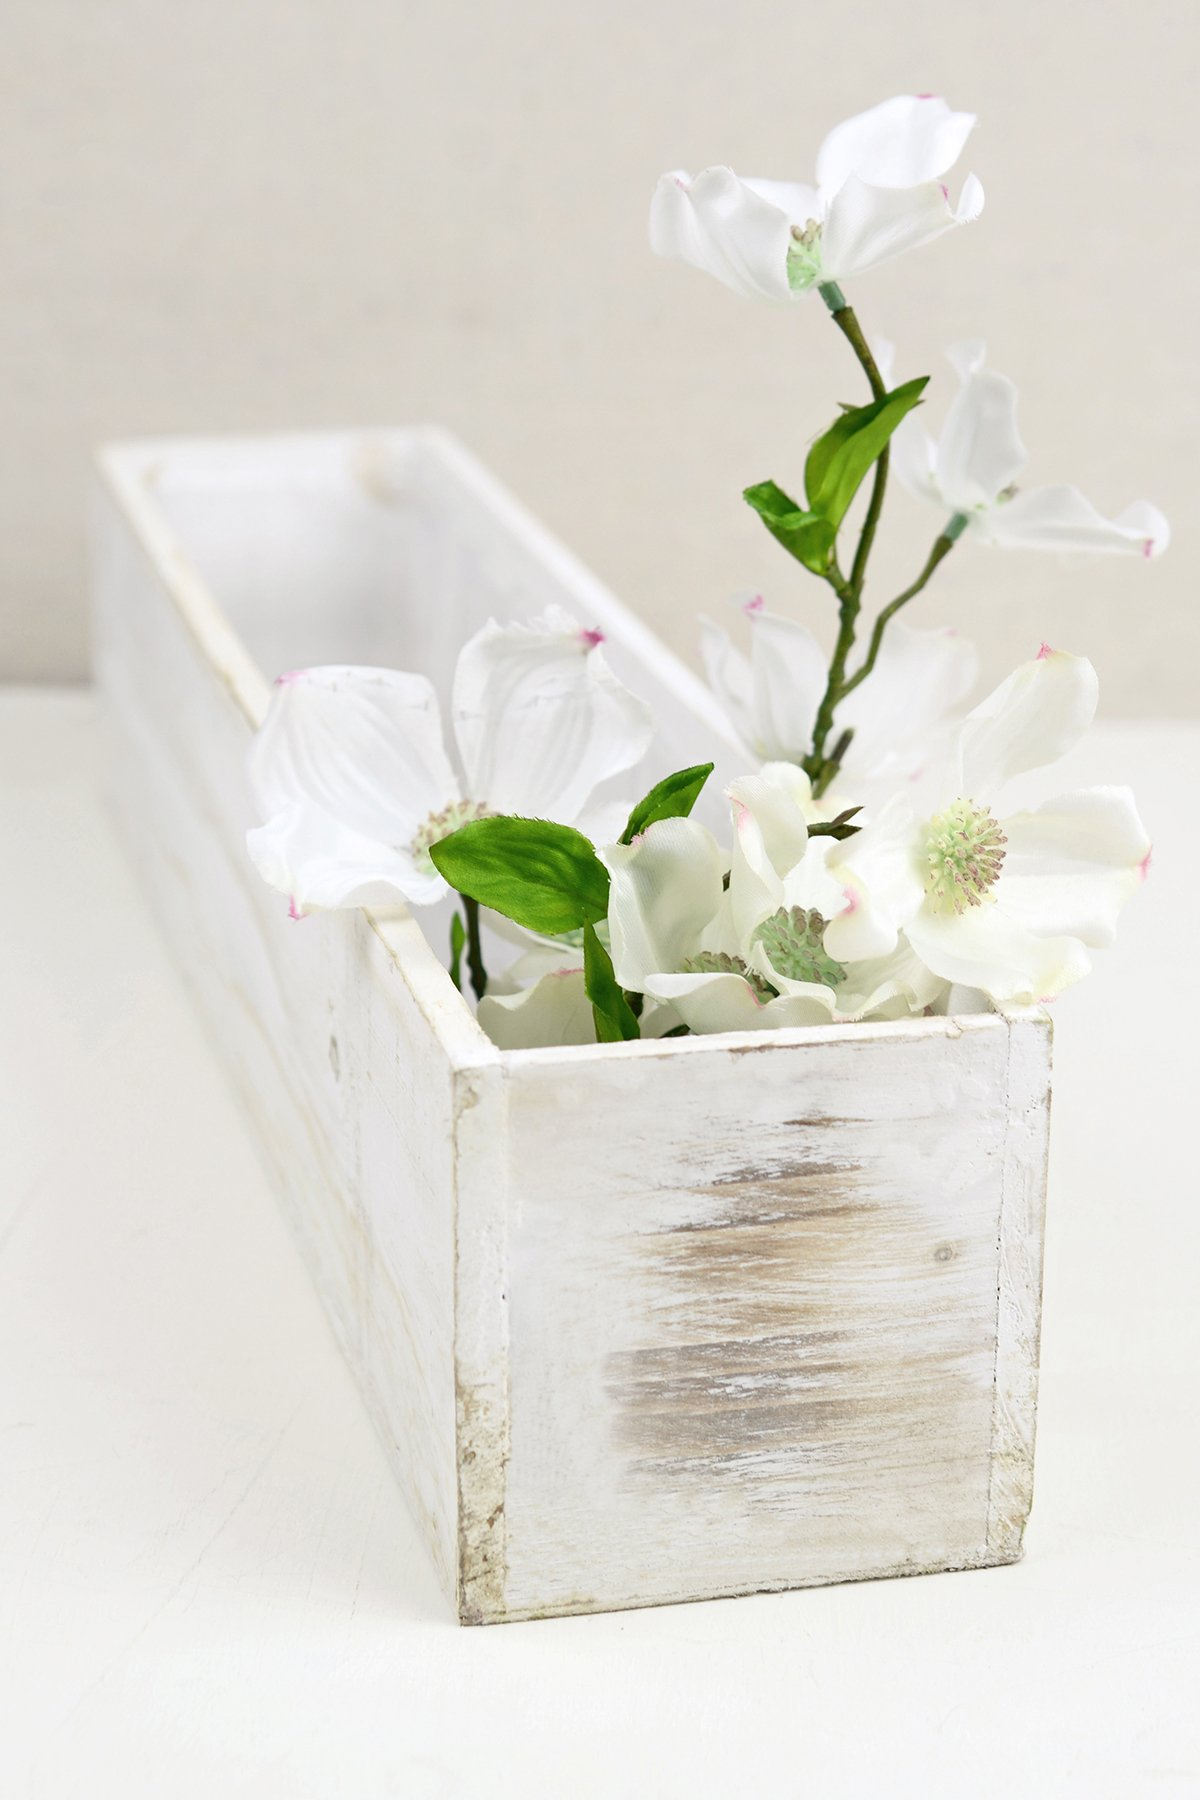 Buy White 4x20 Planter Boxes Wood Rectangular Box Beautifully Display Floral Arrangements With A Plastic Liner 4in Tall X 4in Wide X 20in Long In Cheap Price On Alibaba Com